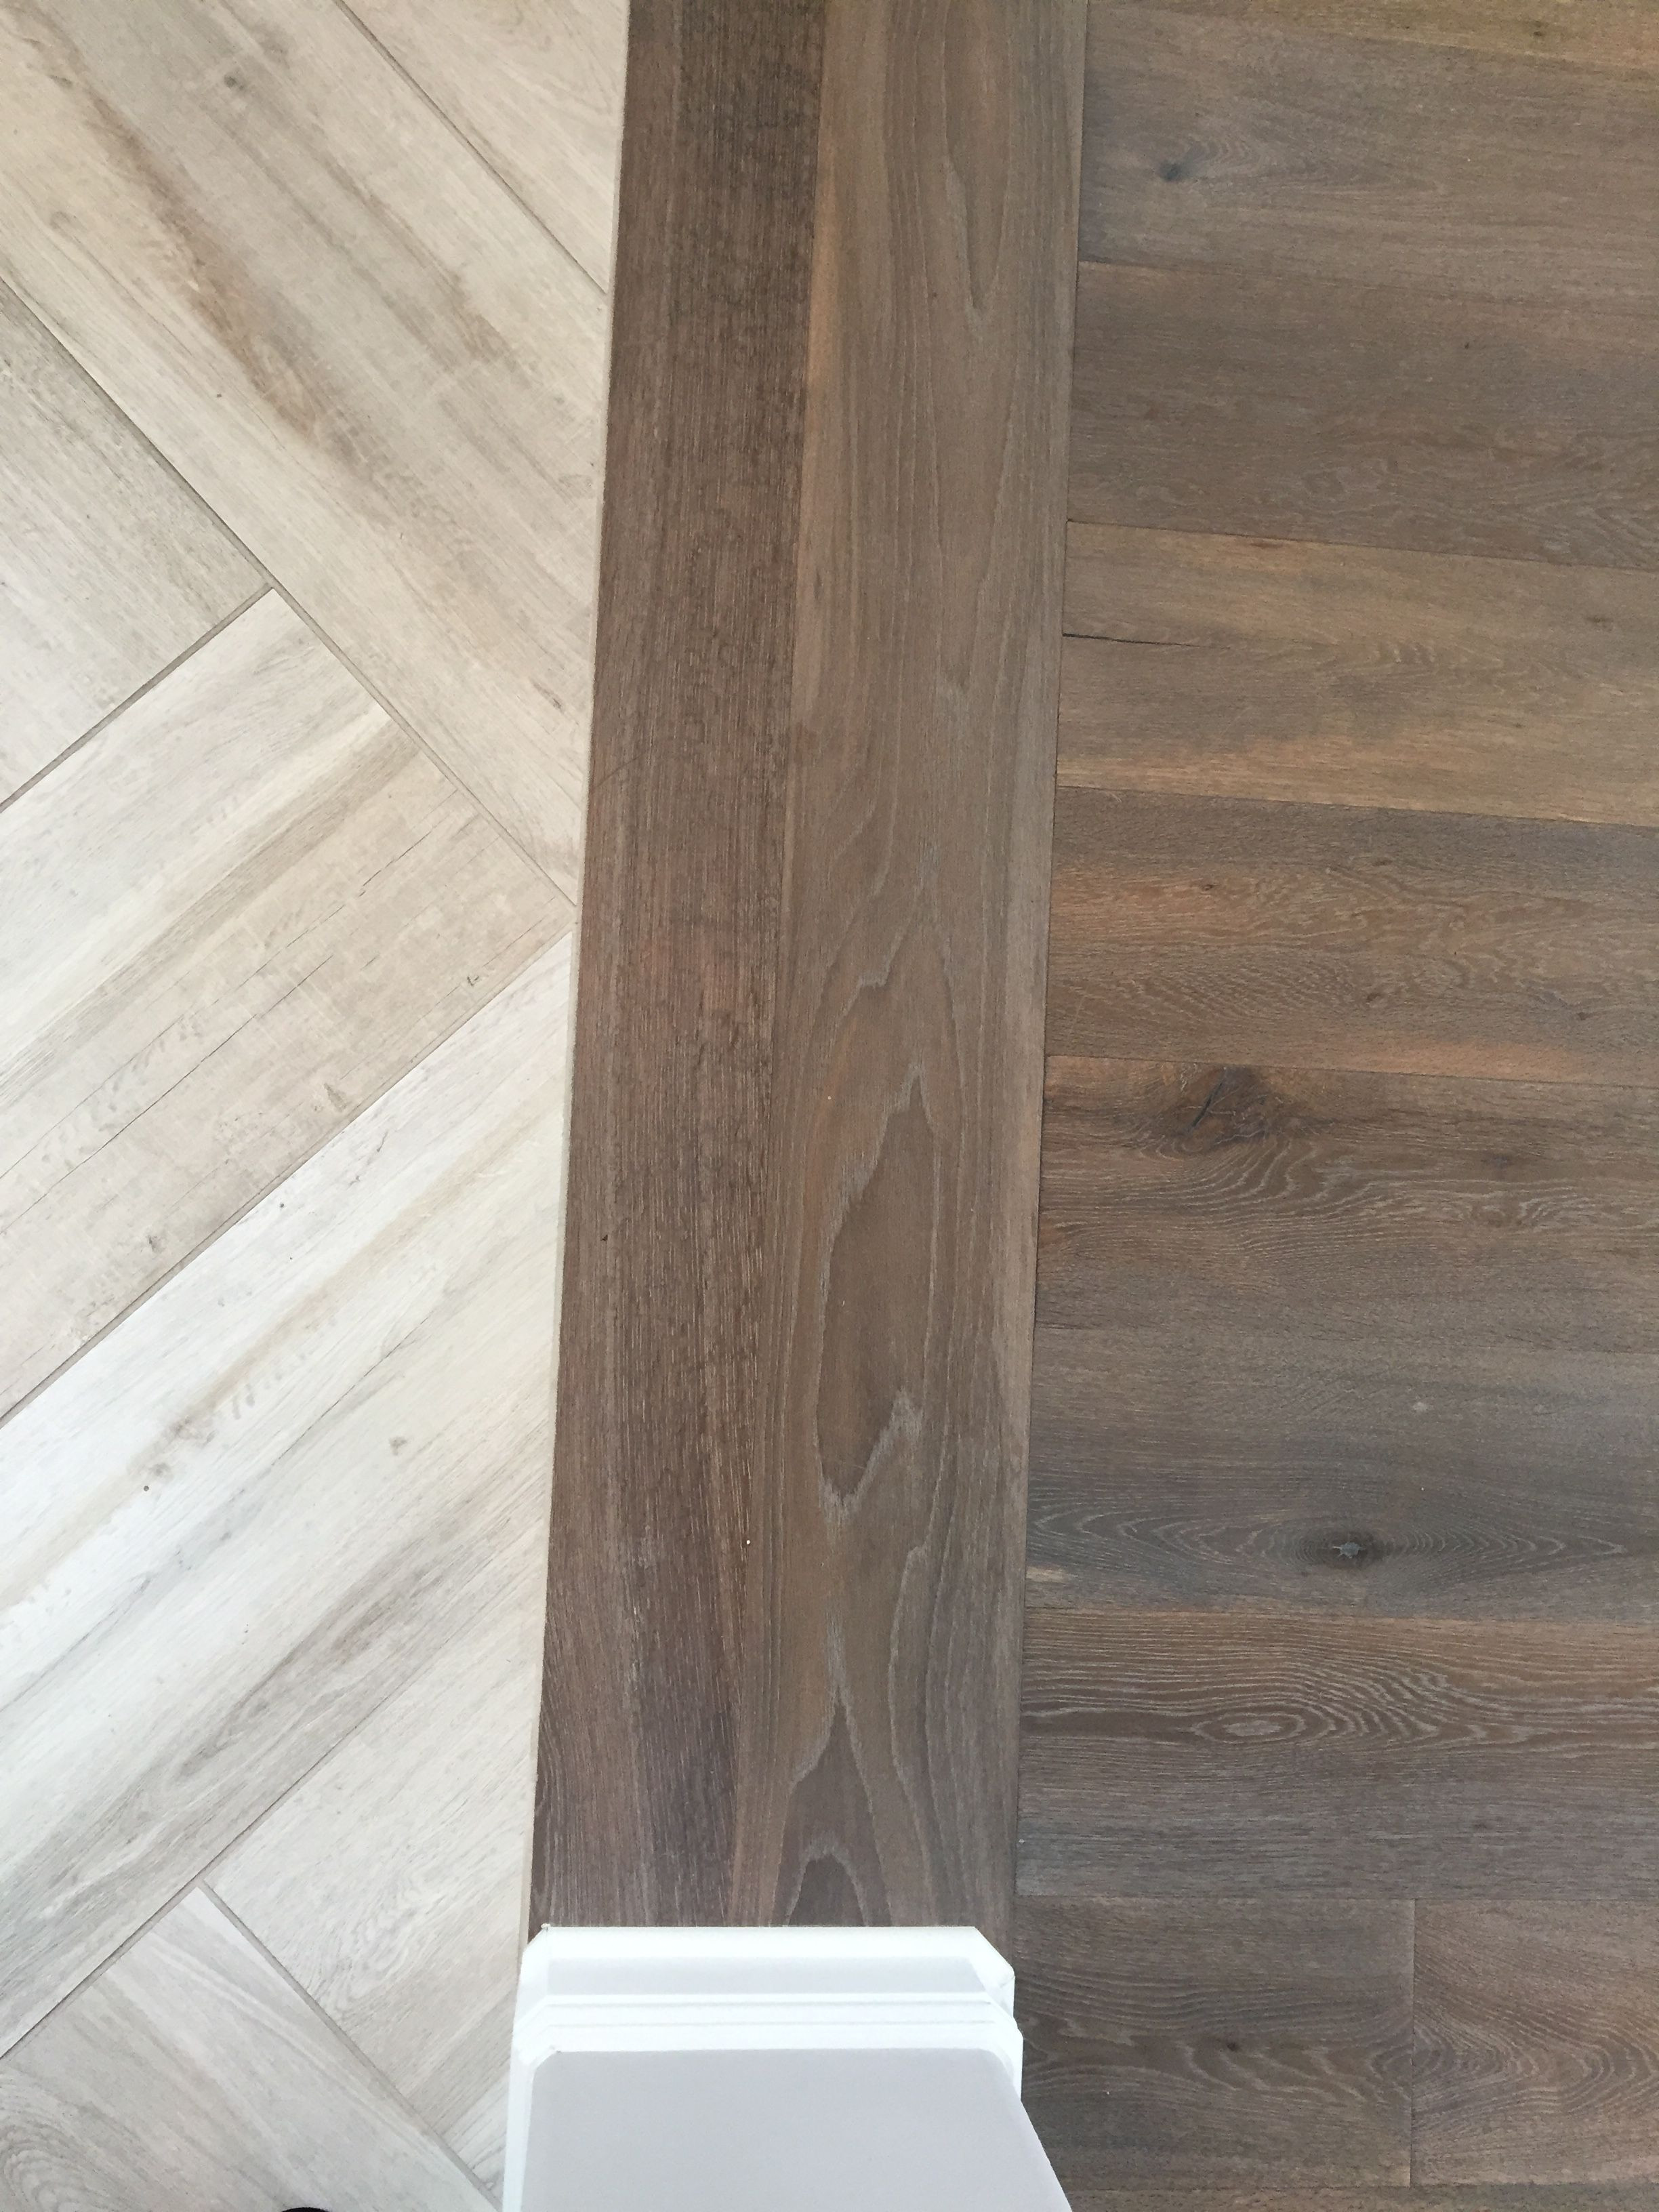 hickory hardwood flooring pros and cons of floor transition laminate to herringbone tile pattern model with regard to floor transition laminate to herringbone tile pattern